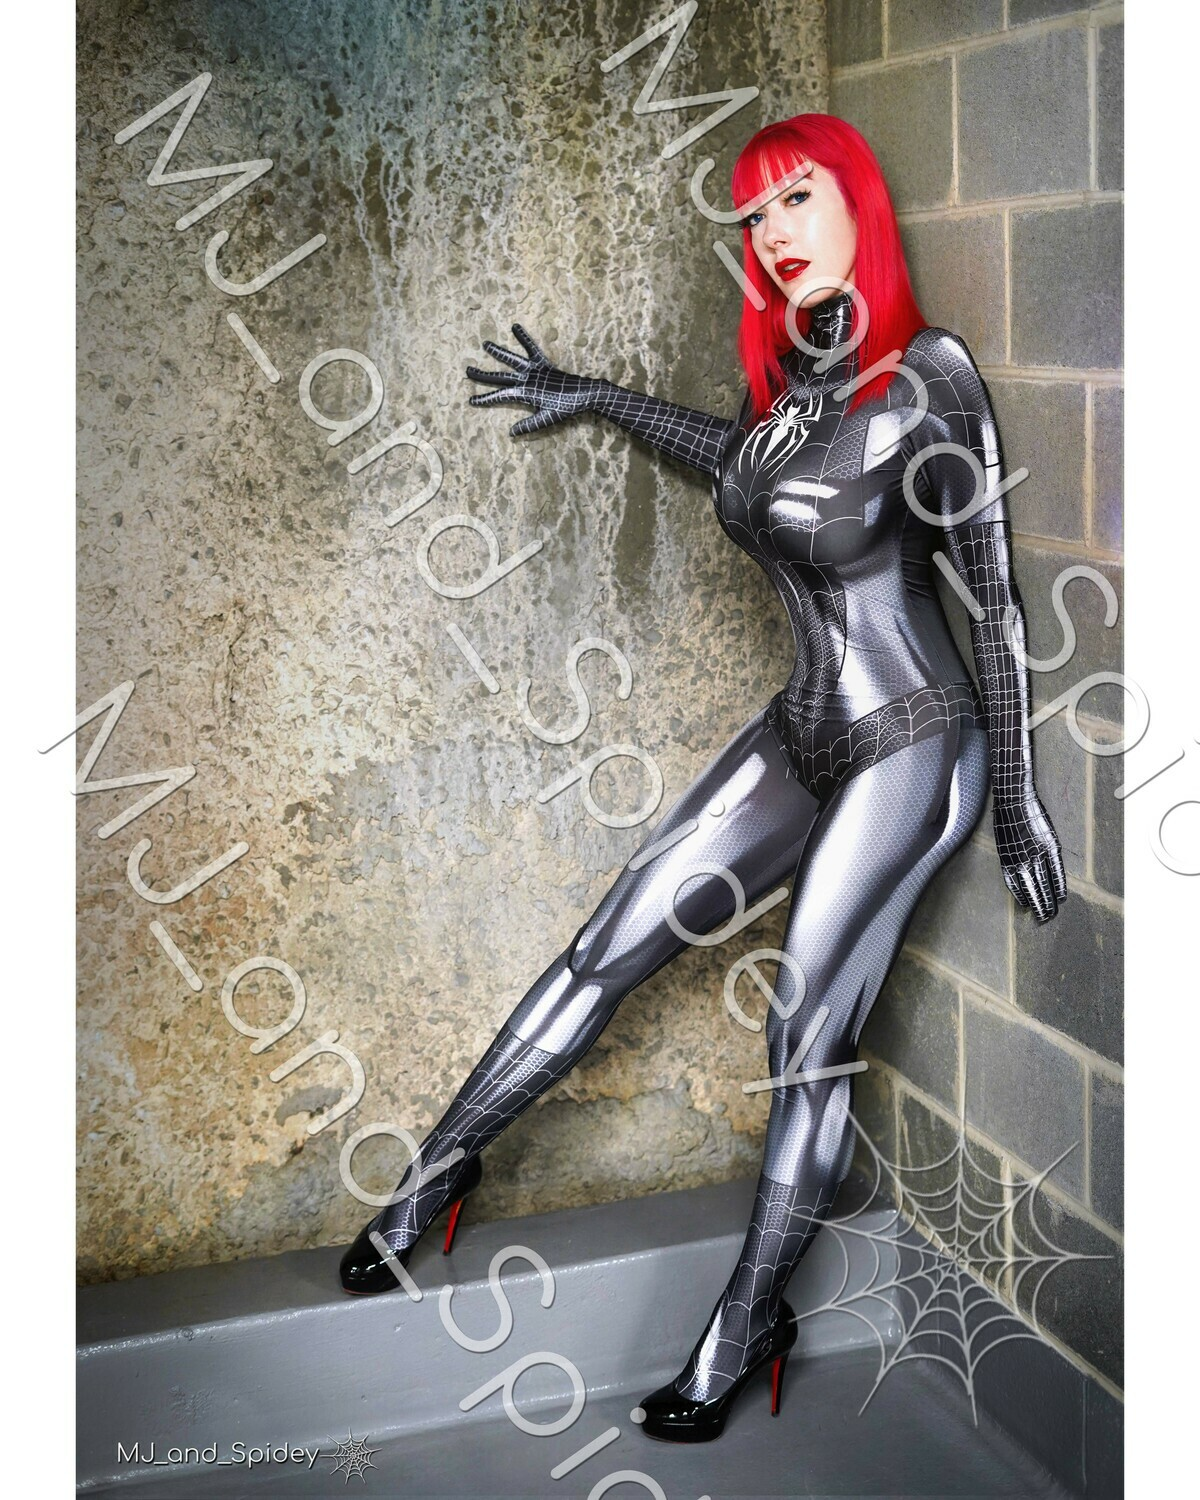 Marvel - Spider-Man - Mary Jane Watson - Symbiote Spider-Suit No. 1 - 8x10 Cosplay Print (@MJ_and_Spidey, MJ and Spidey, Comics)